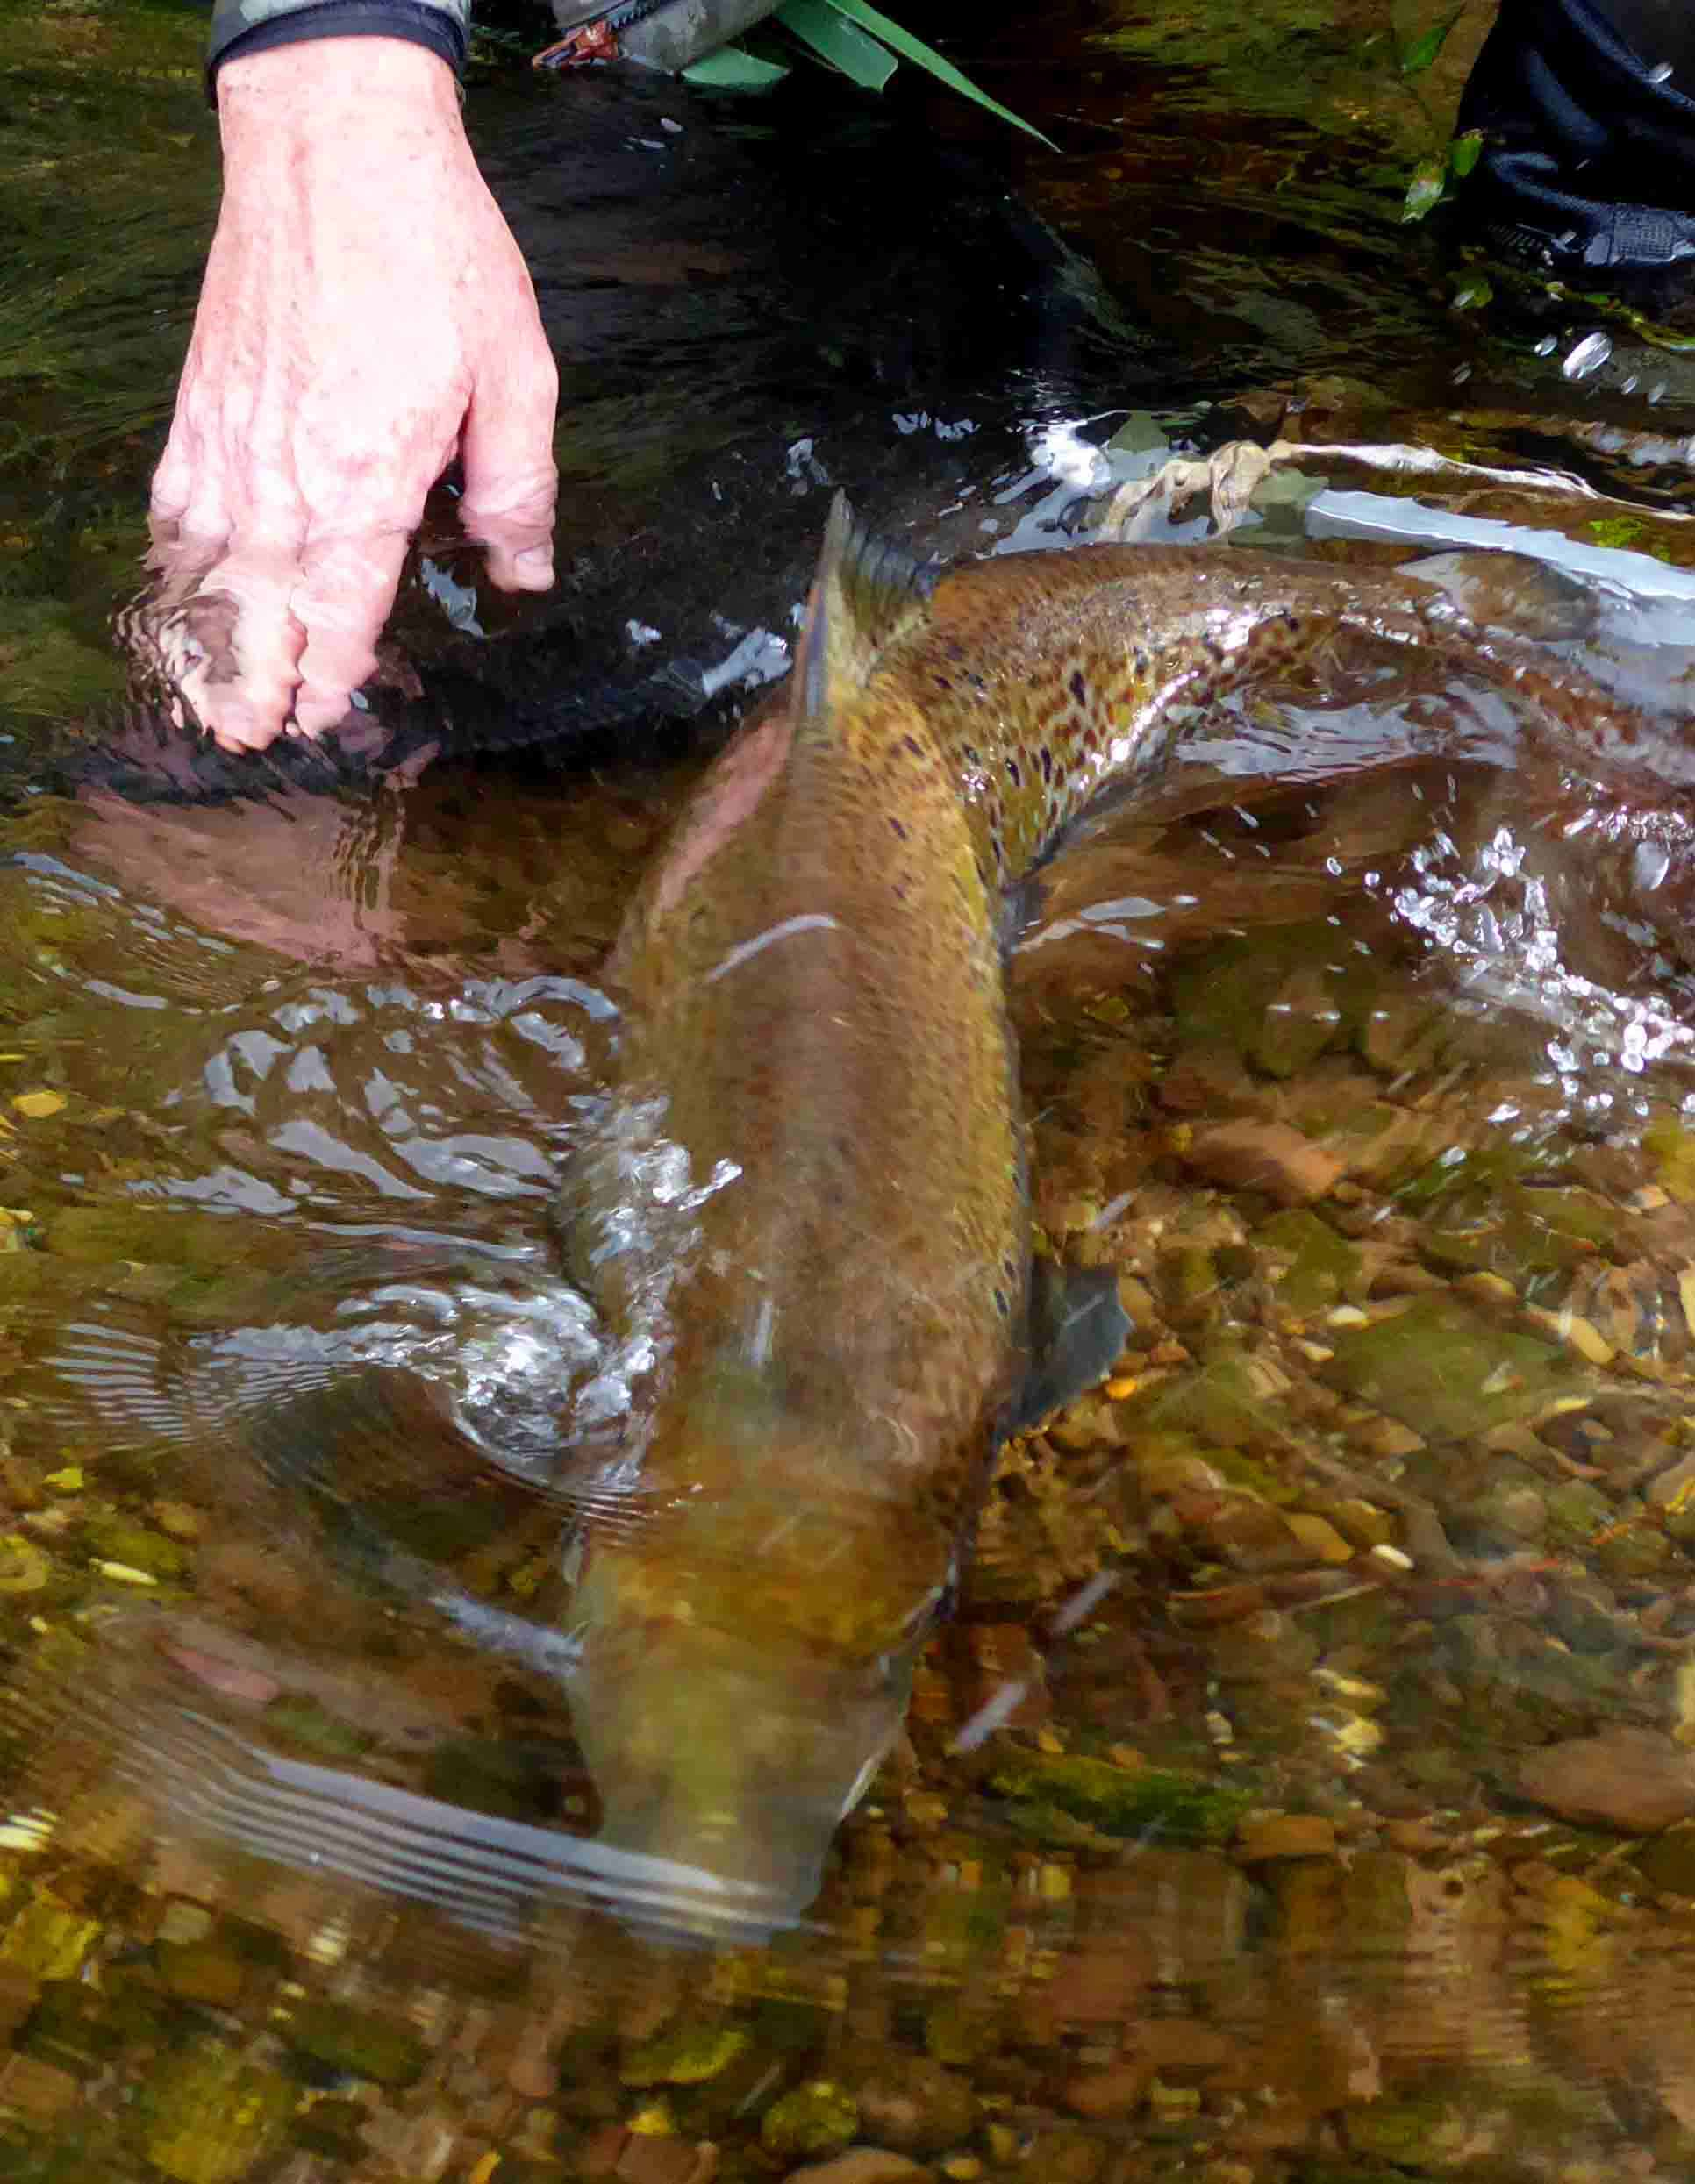 Upper Wye and Usk salmon anglers at least have a chance to end their season their season well! Photo: Guy Mawle